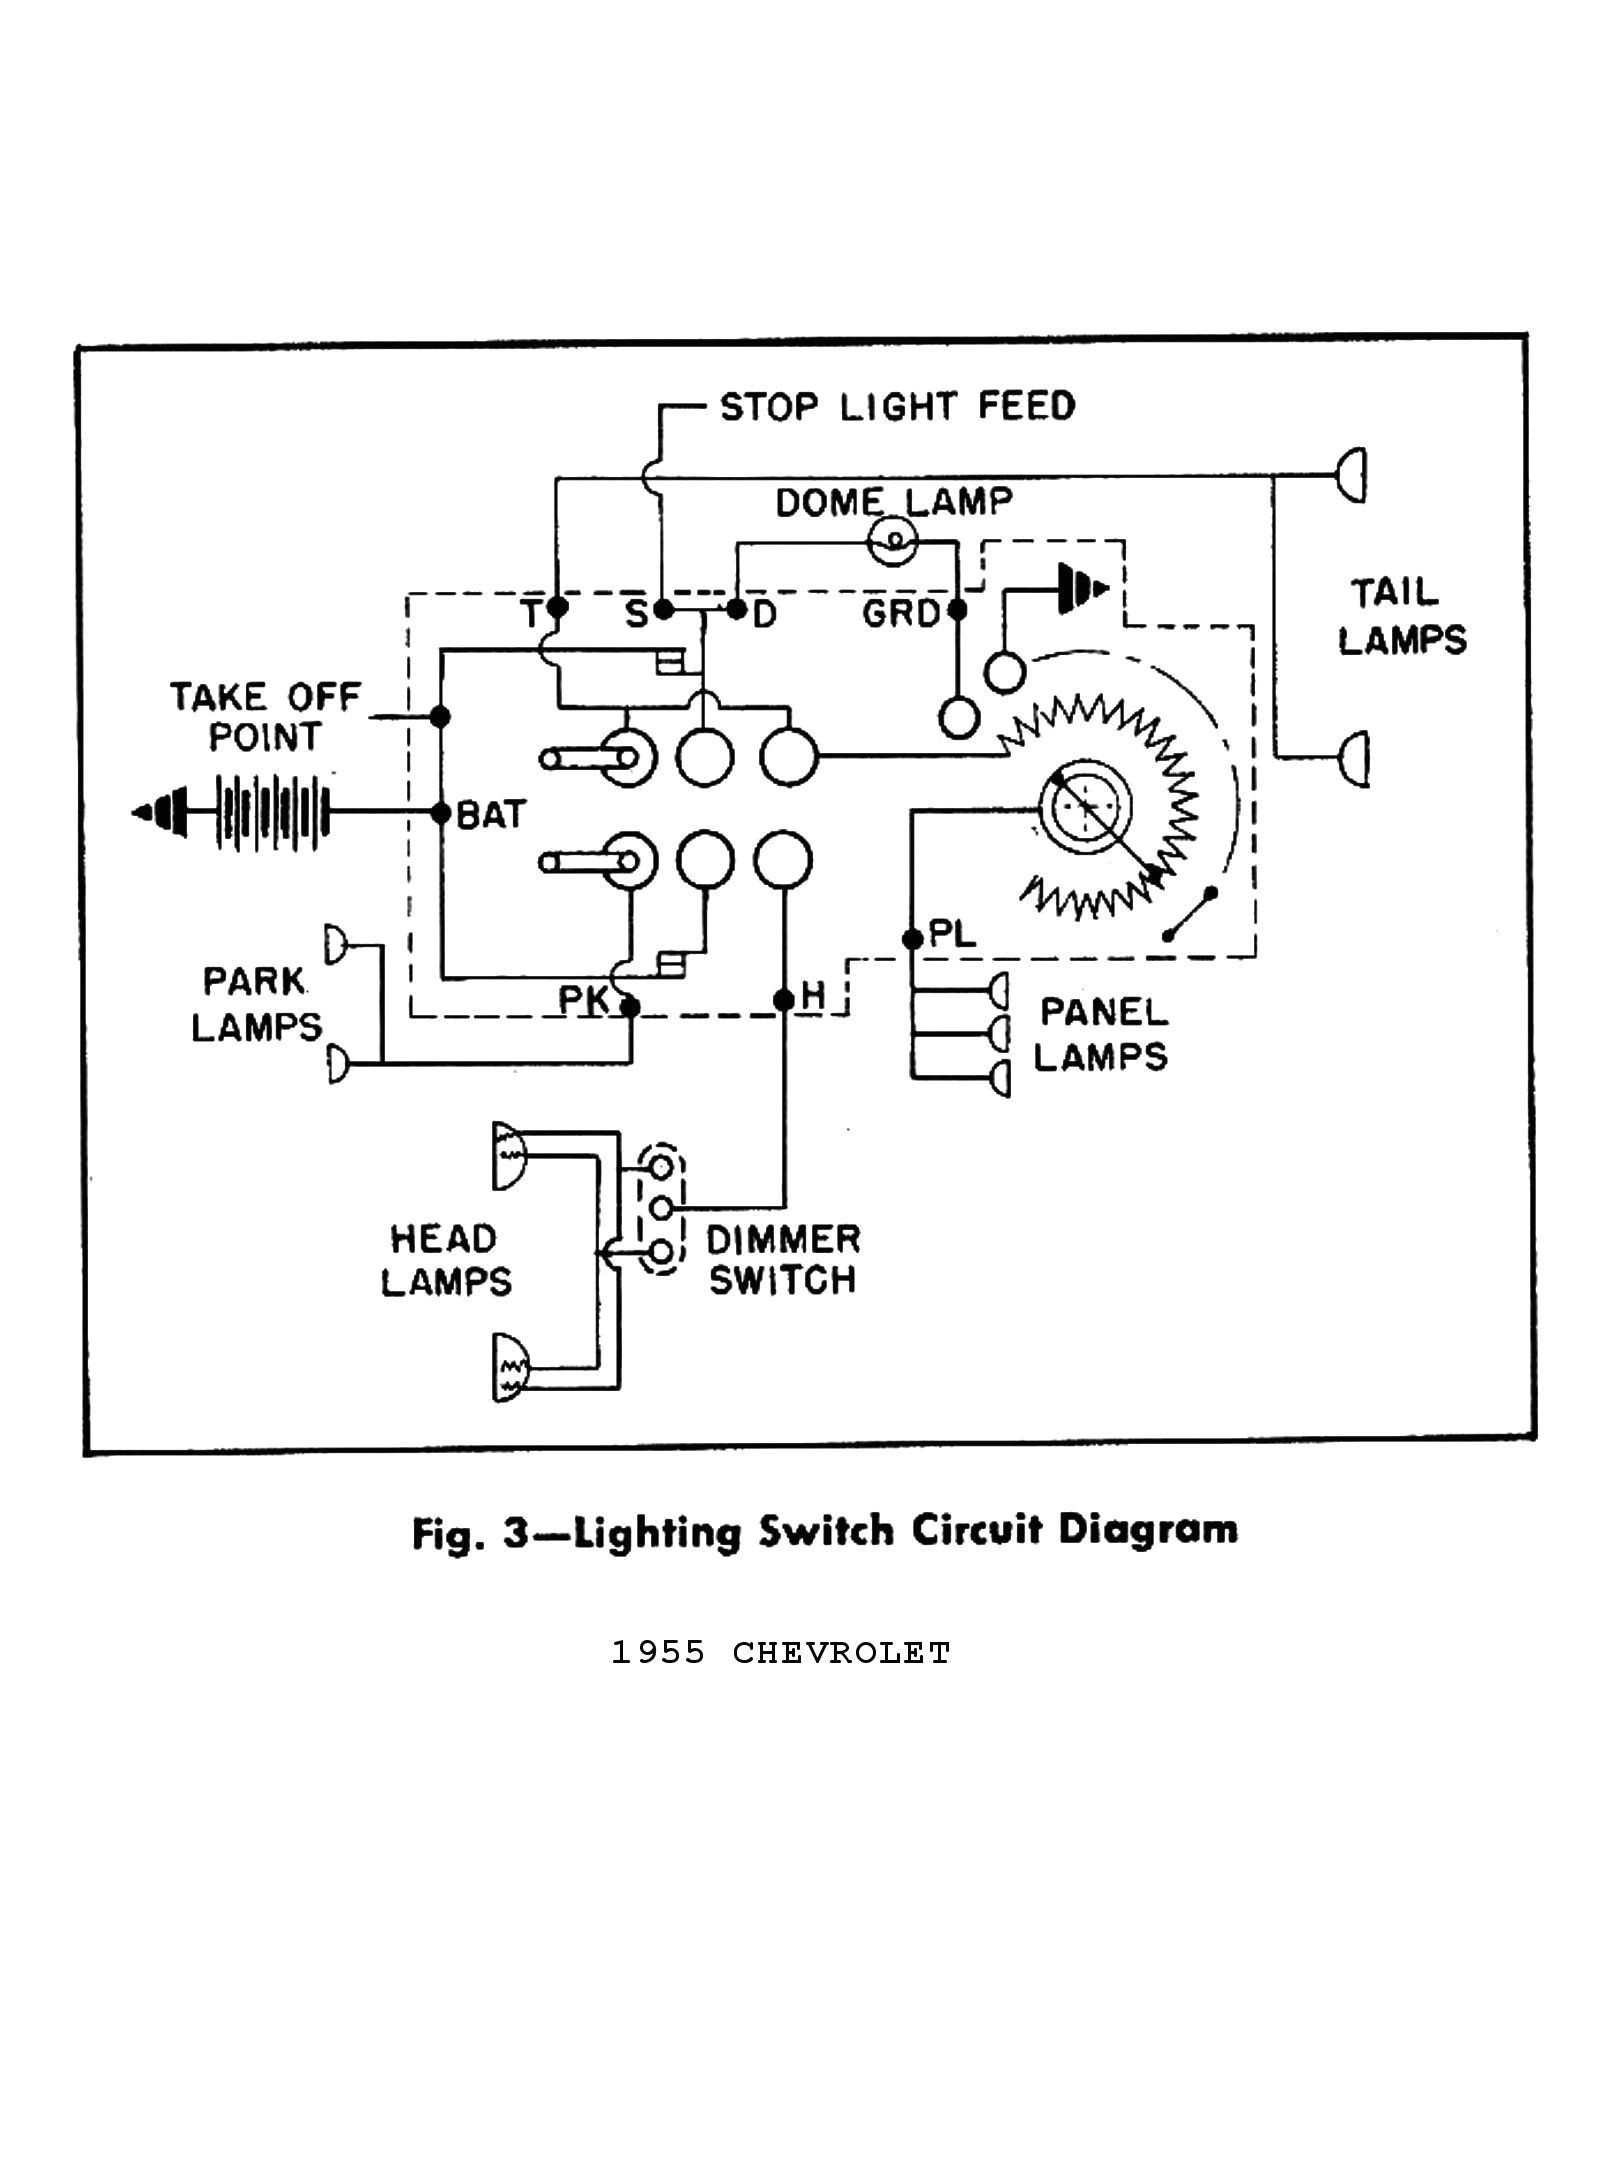 1948 chevy ignition switch wire diagram wire diagram database 1948 chevy headlight switch wiring